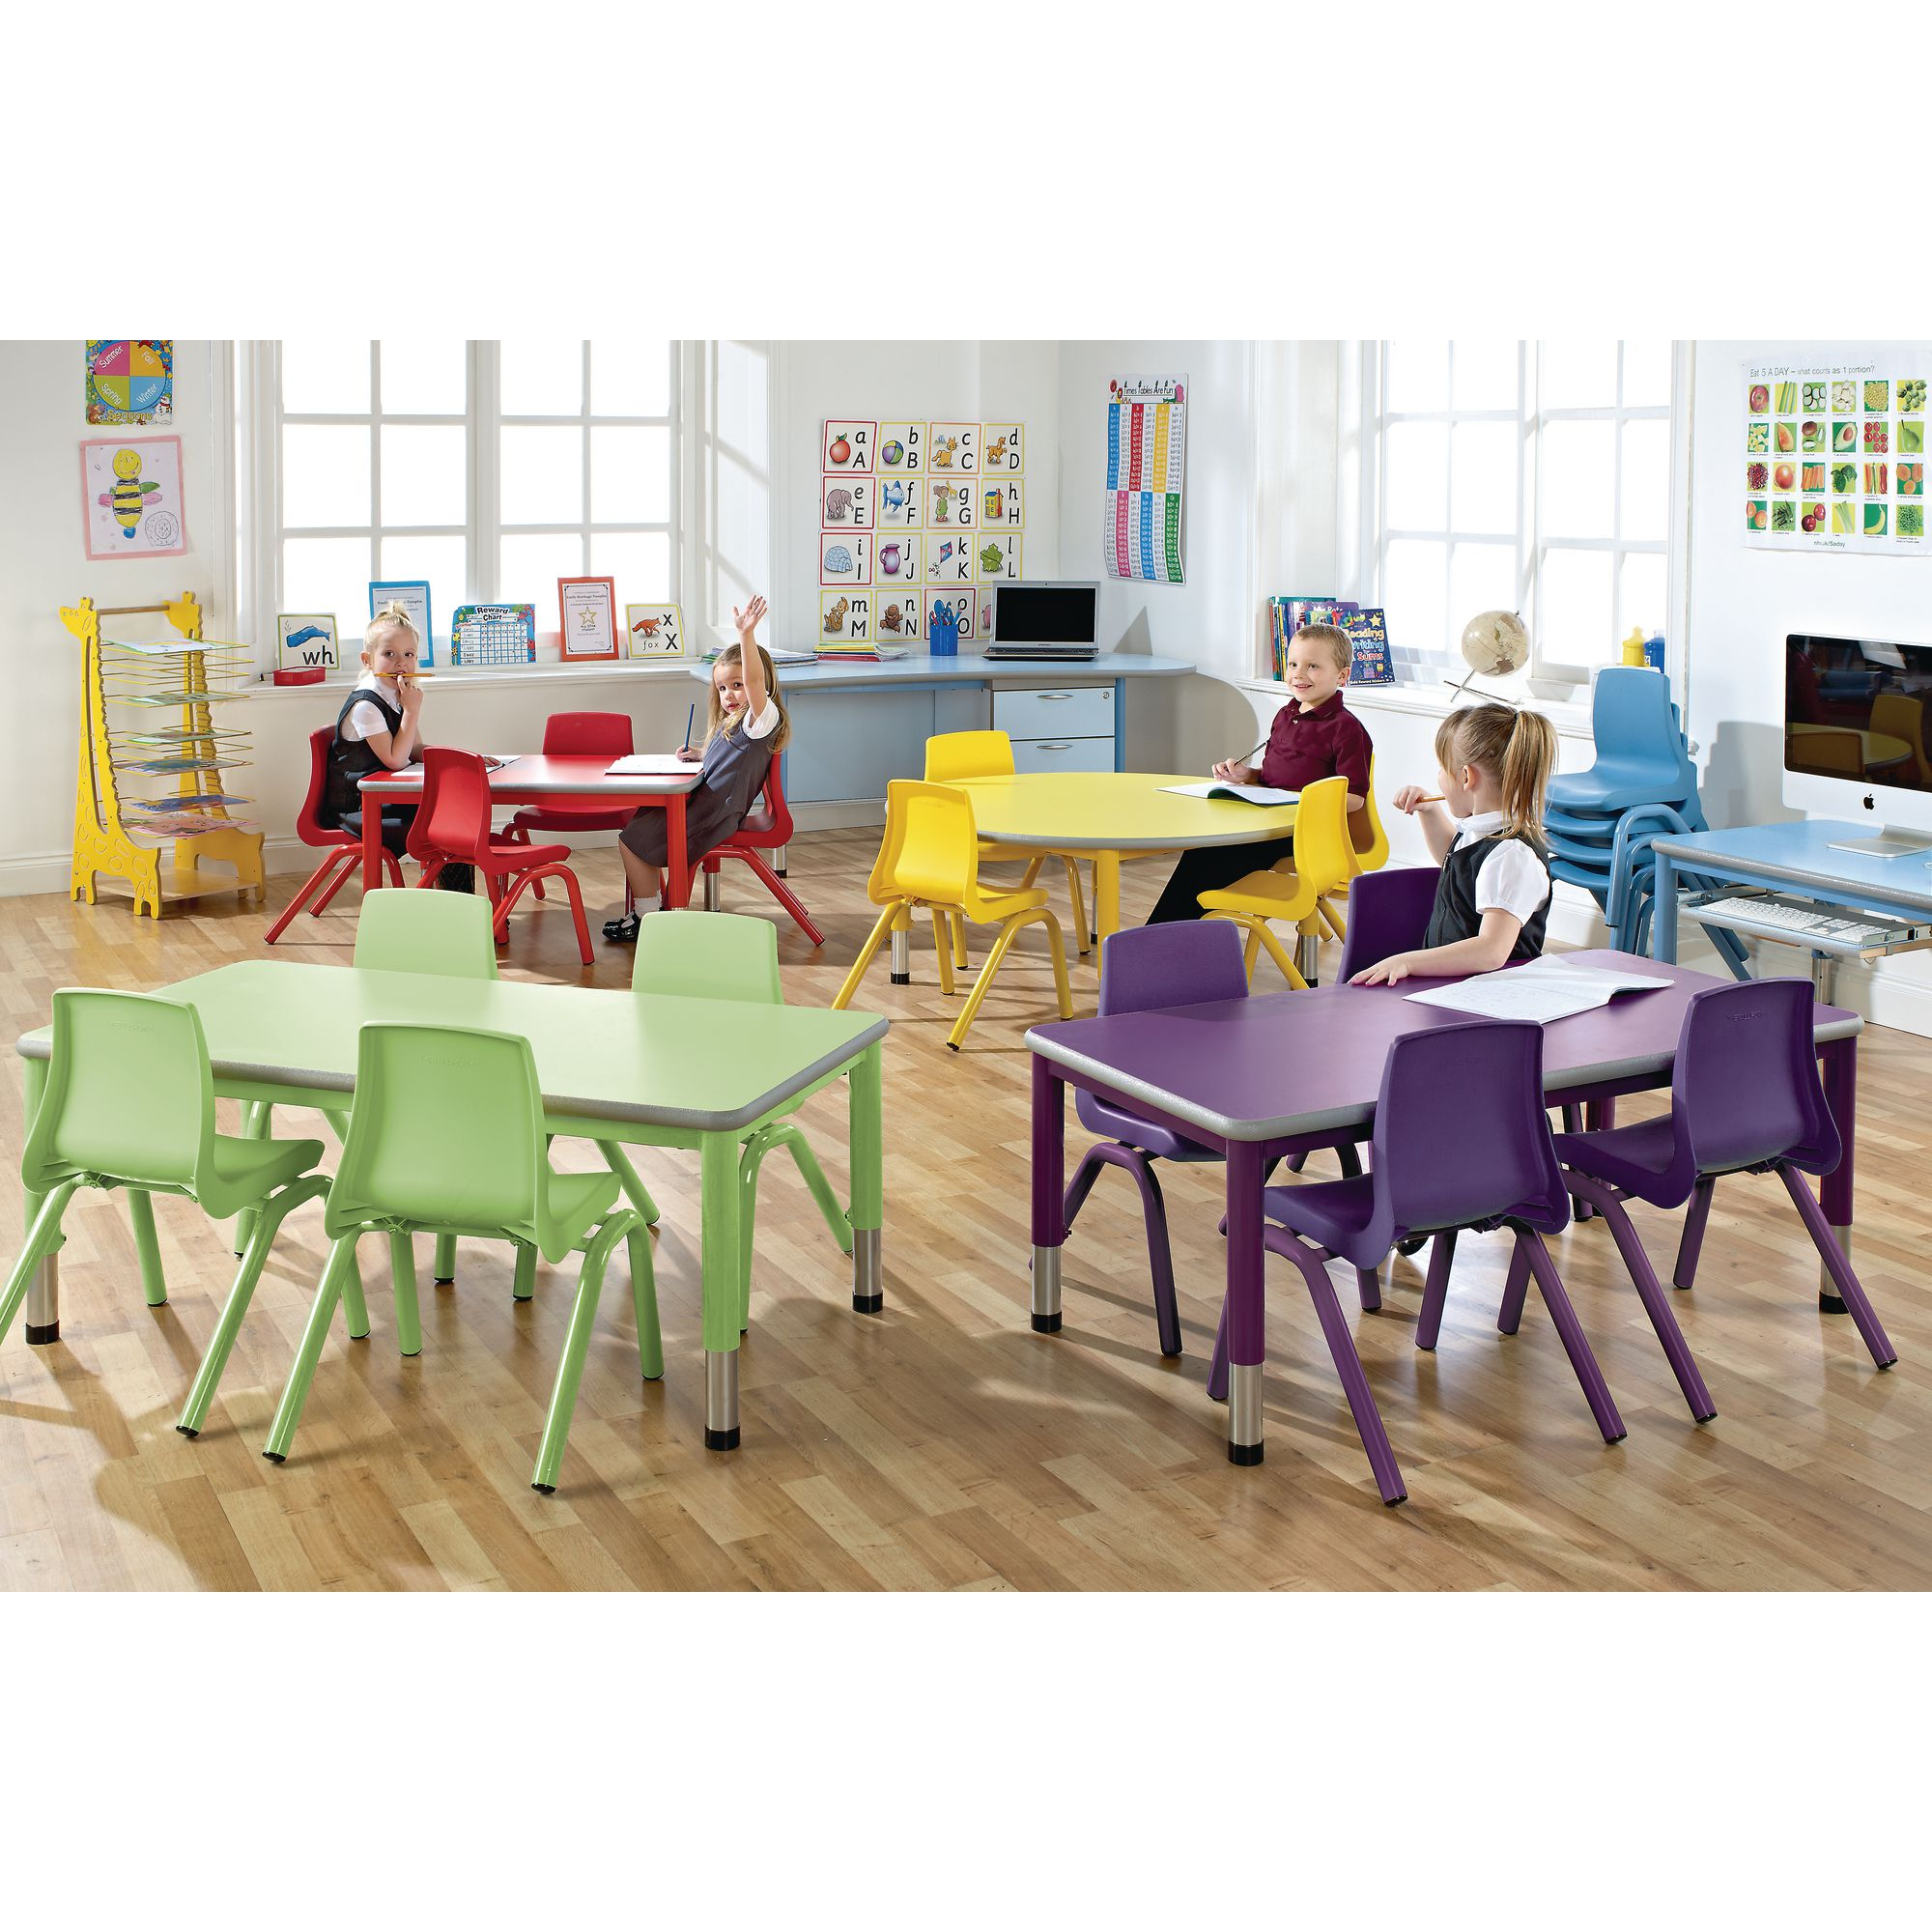 Picture of: Circular Table And 4 Chairs Bundle C1110046d Findel International